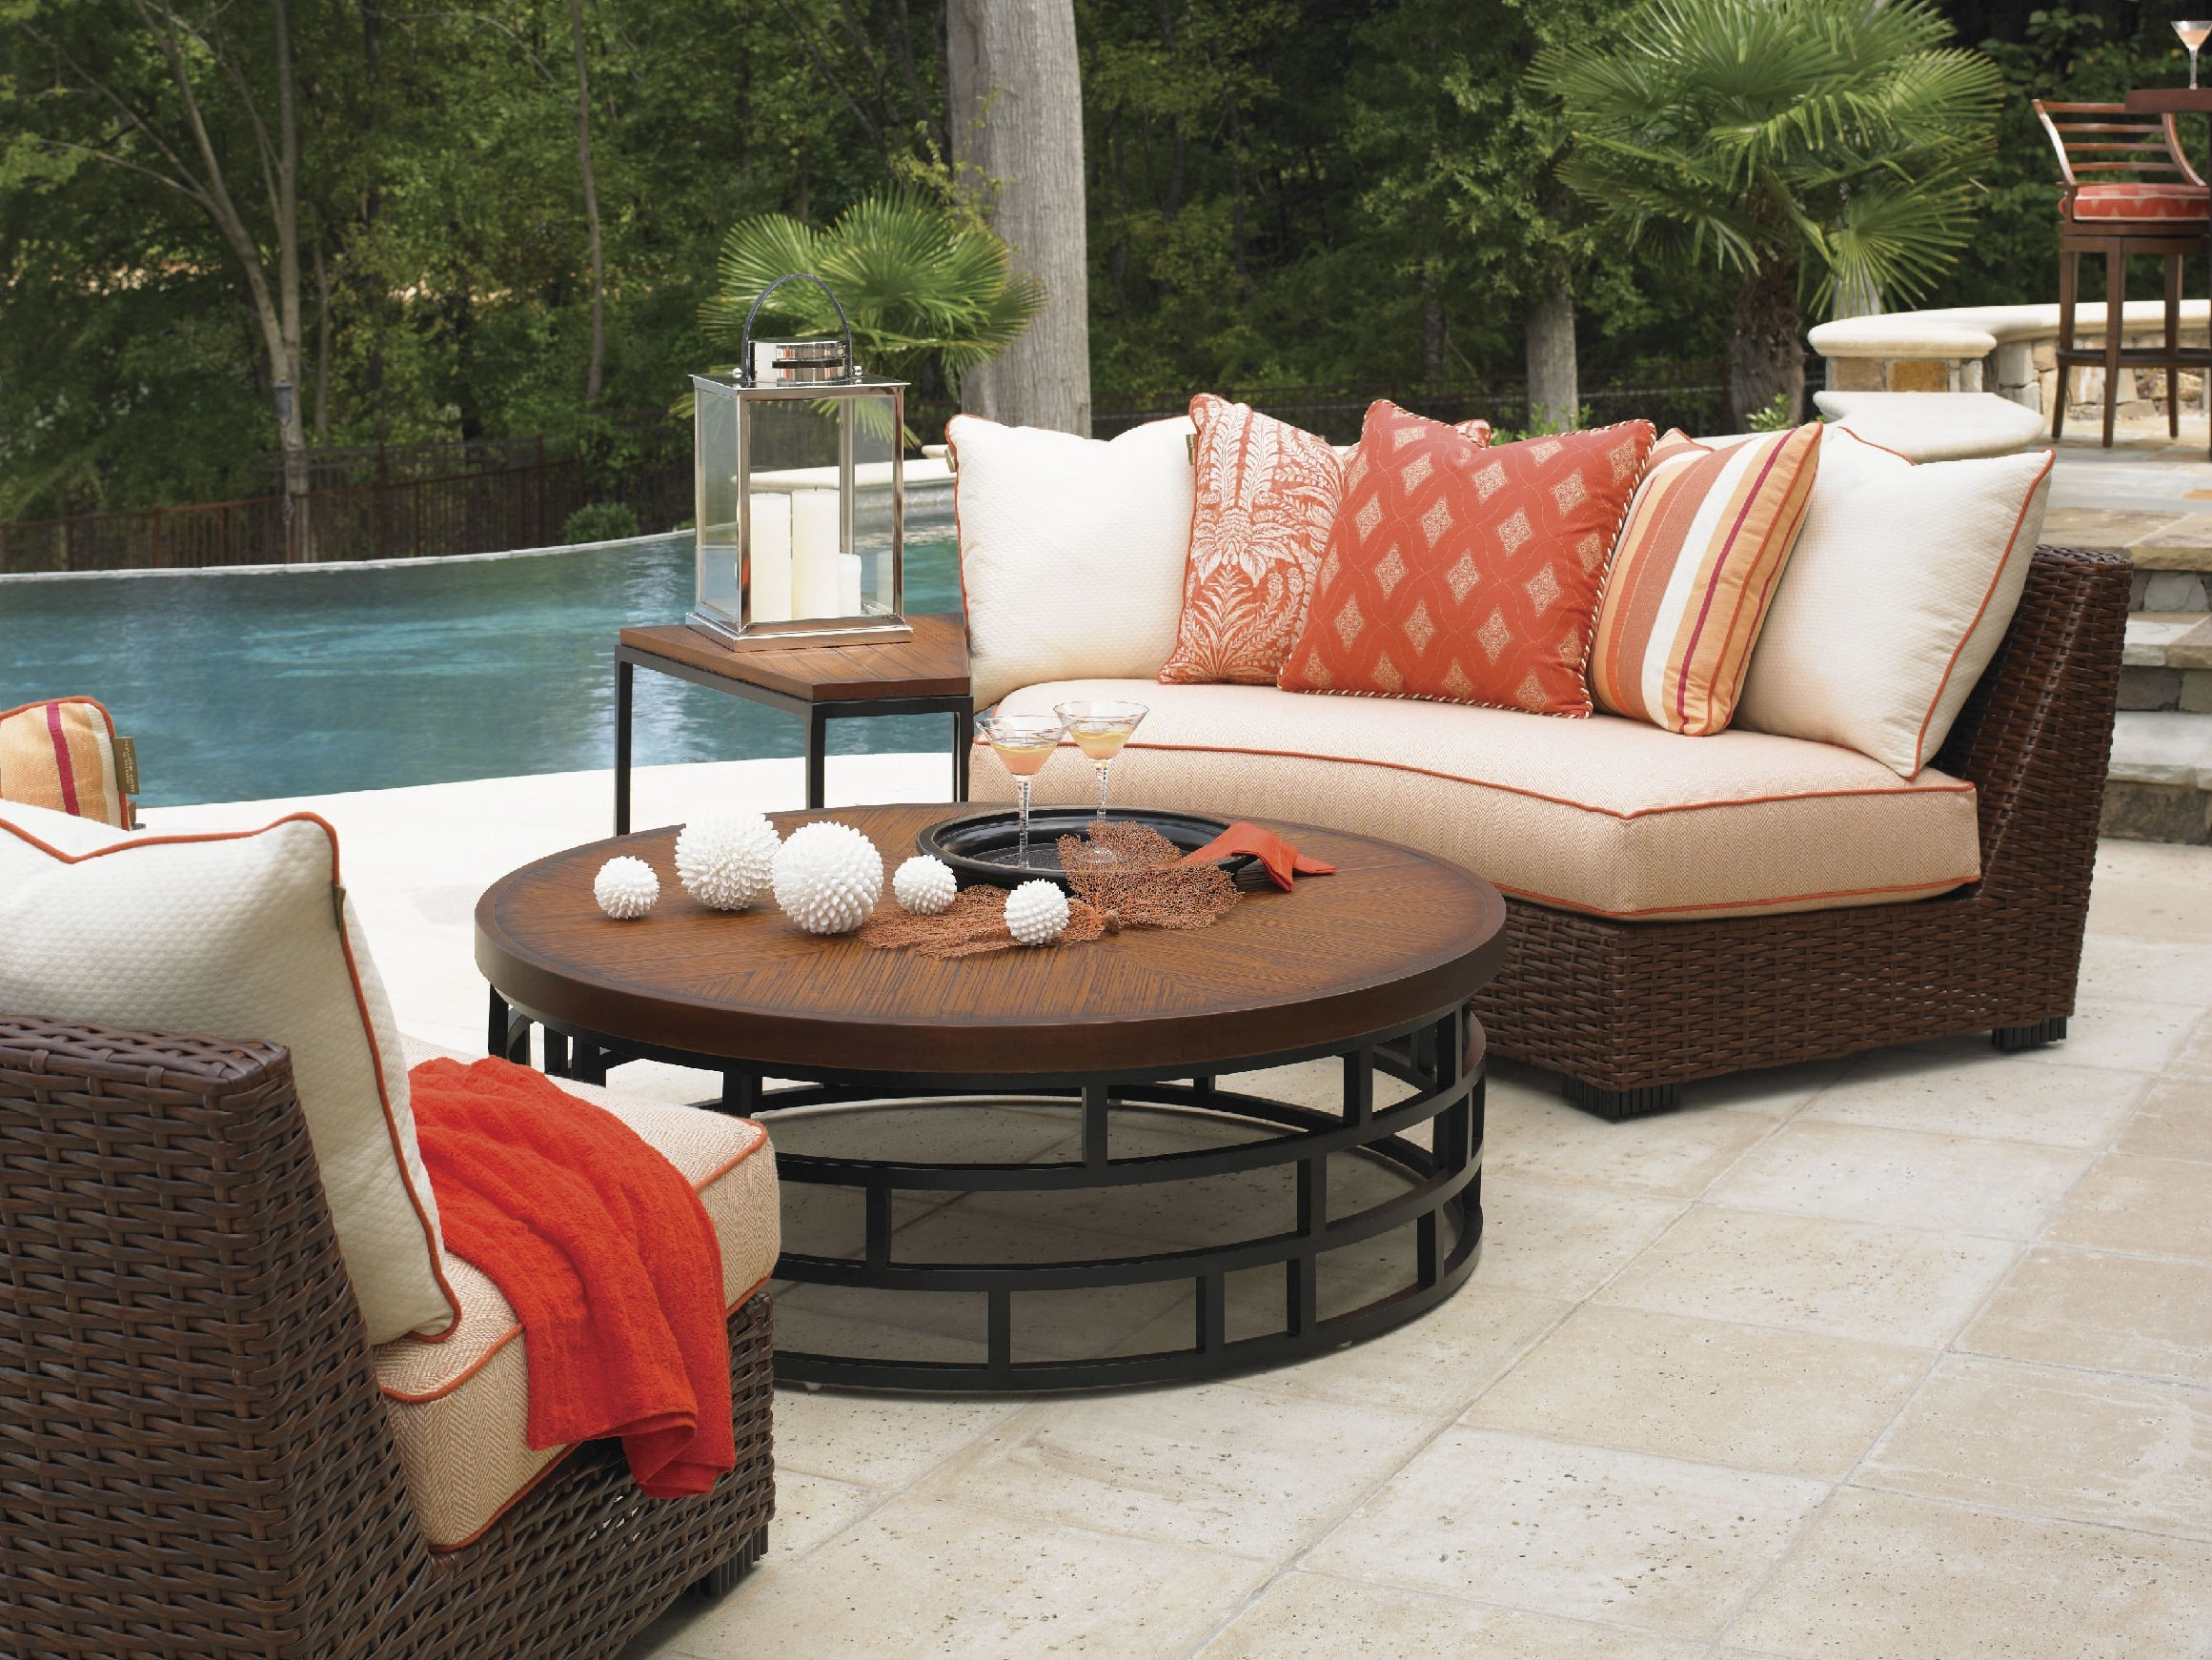 Curved Outdoor sofa Luxury Curved Outdoor Sectional sofa Concept